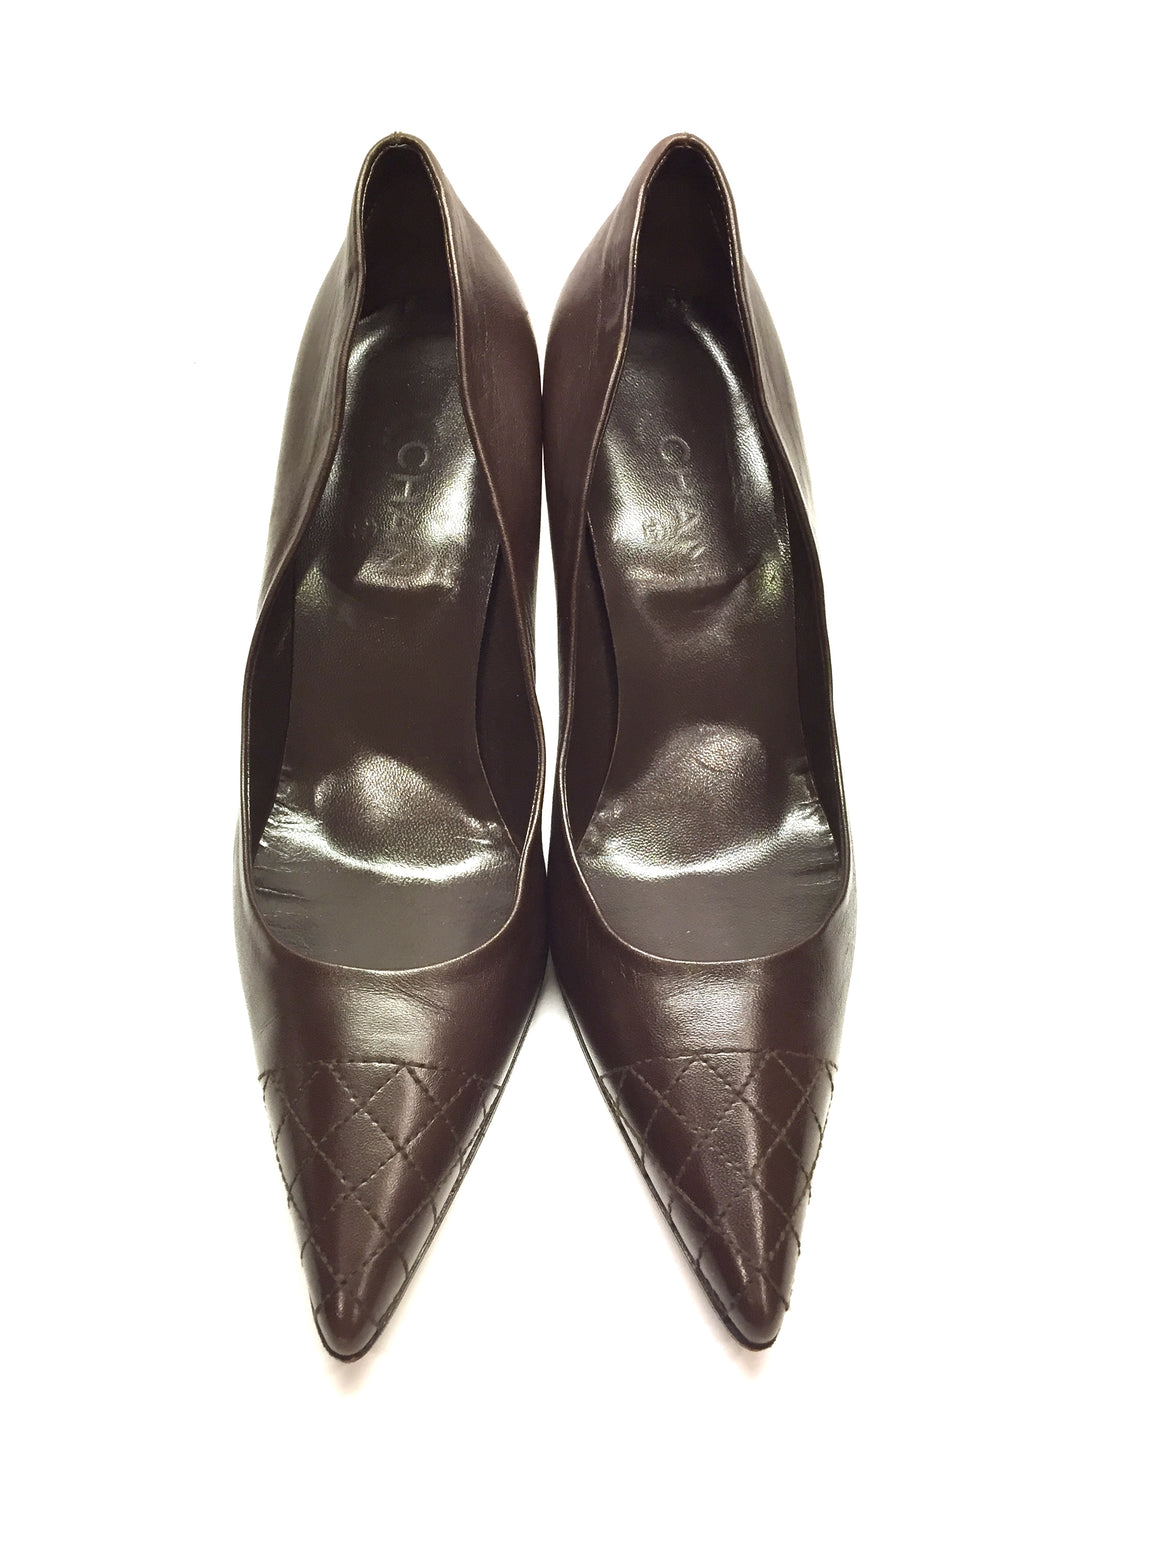 CHANEL Brown Leather diamond-Stitched Cap-Toe & Heels Pointed-Toe Pumps Sz40